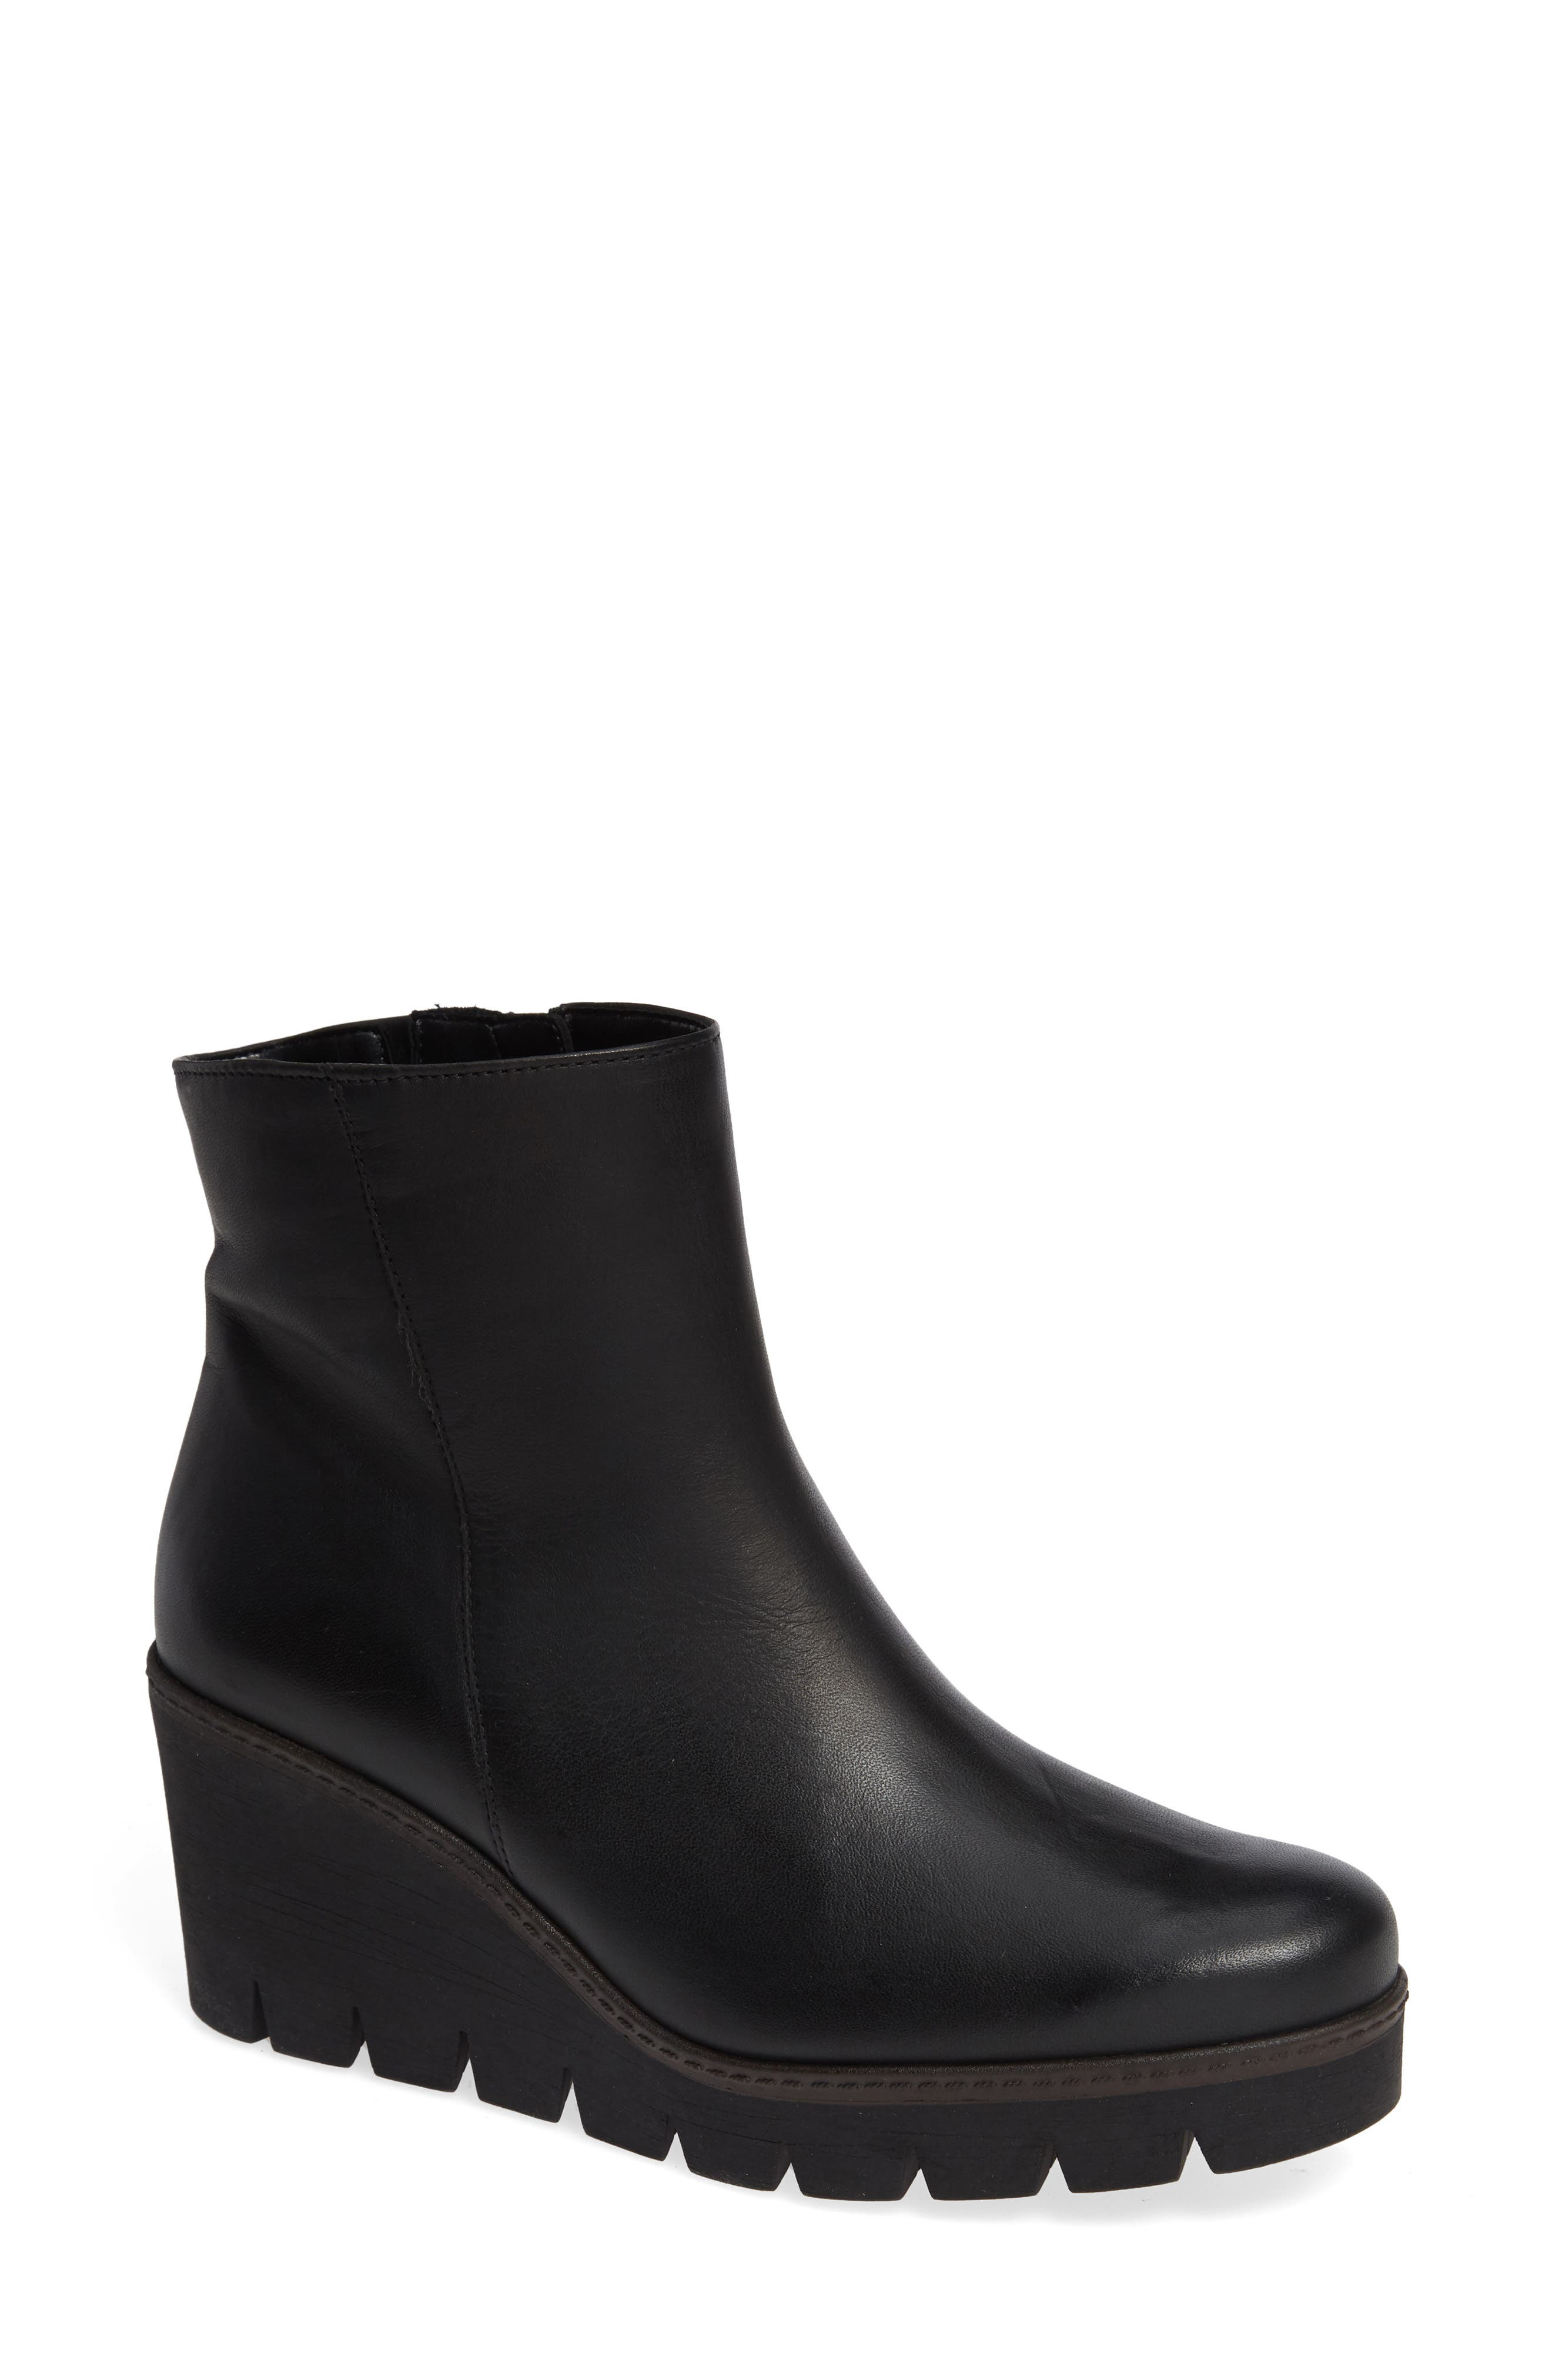 Friendly Wedge Bootie,                         Main,                         color, BLACK LEATHER